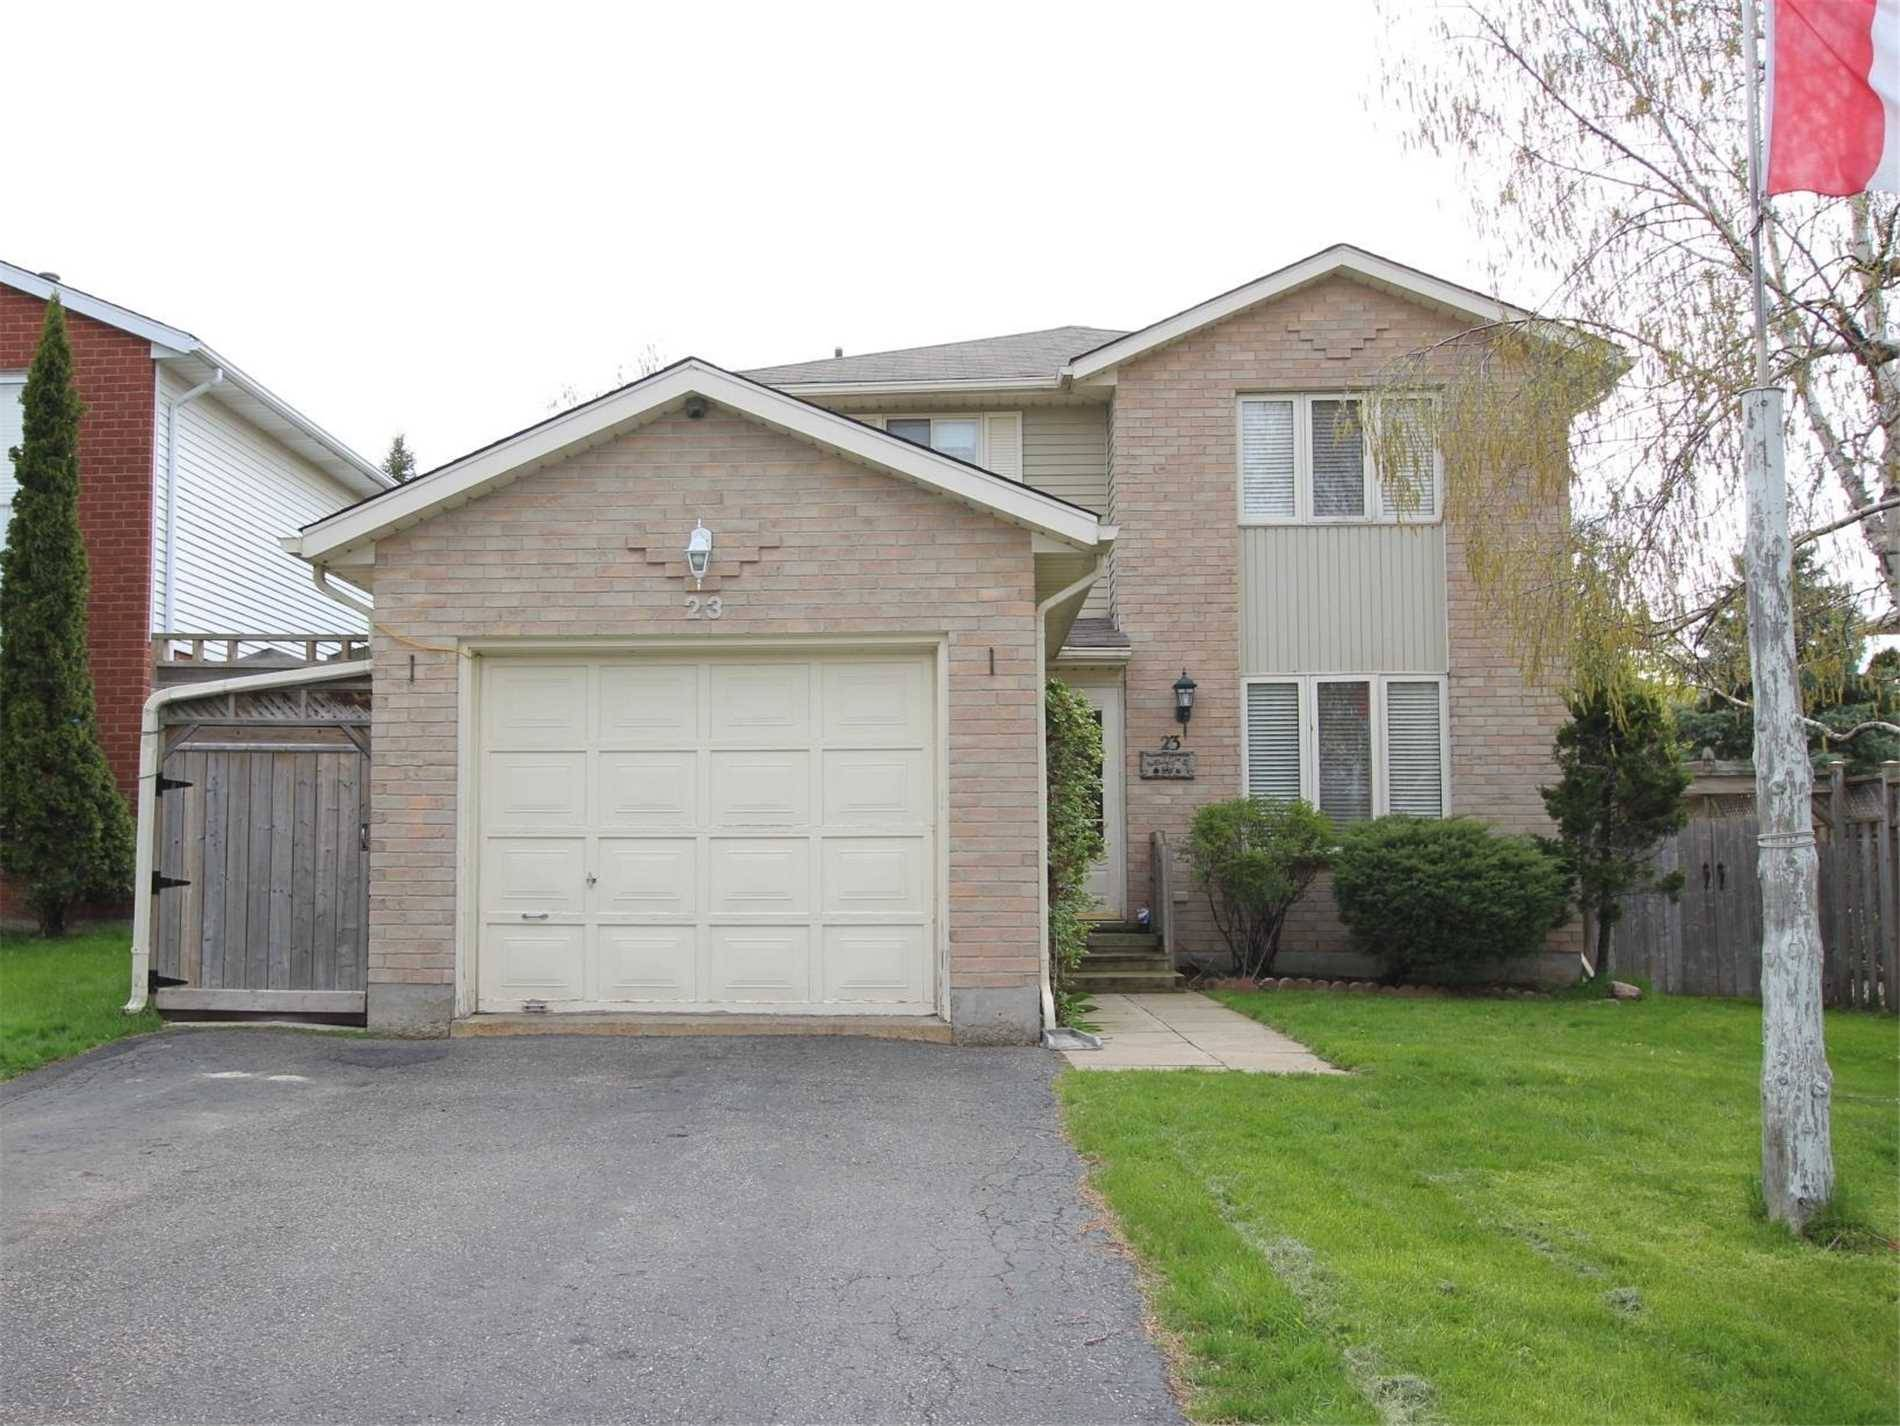 House for sale at 23 Erbsville Ct Waterloo Ontario - MLS: X4454018